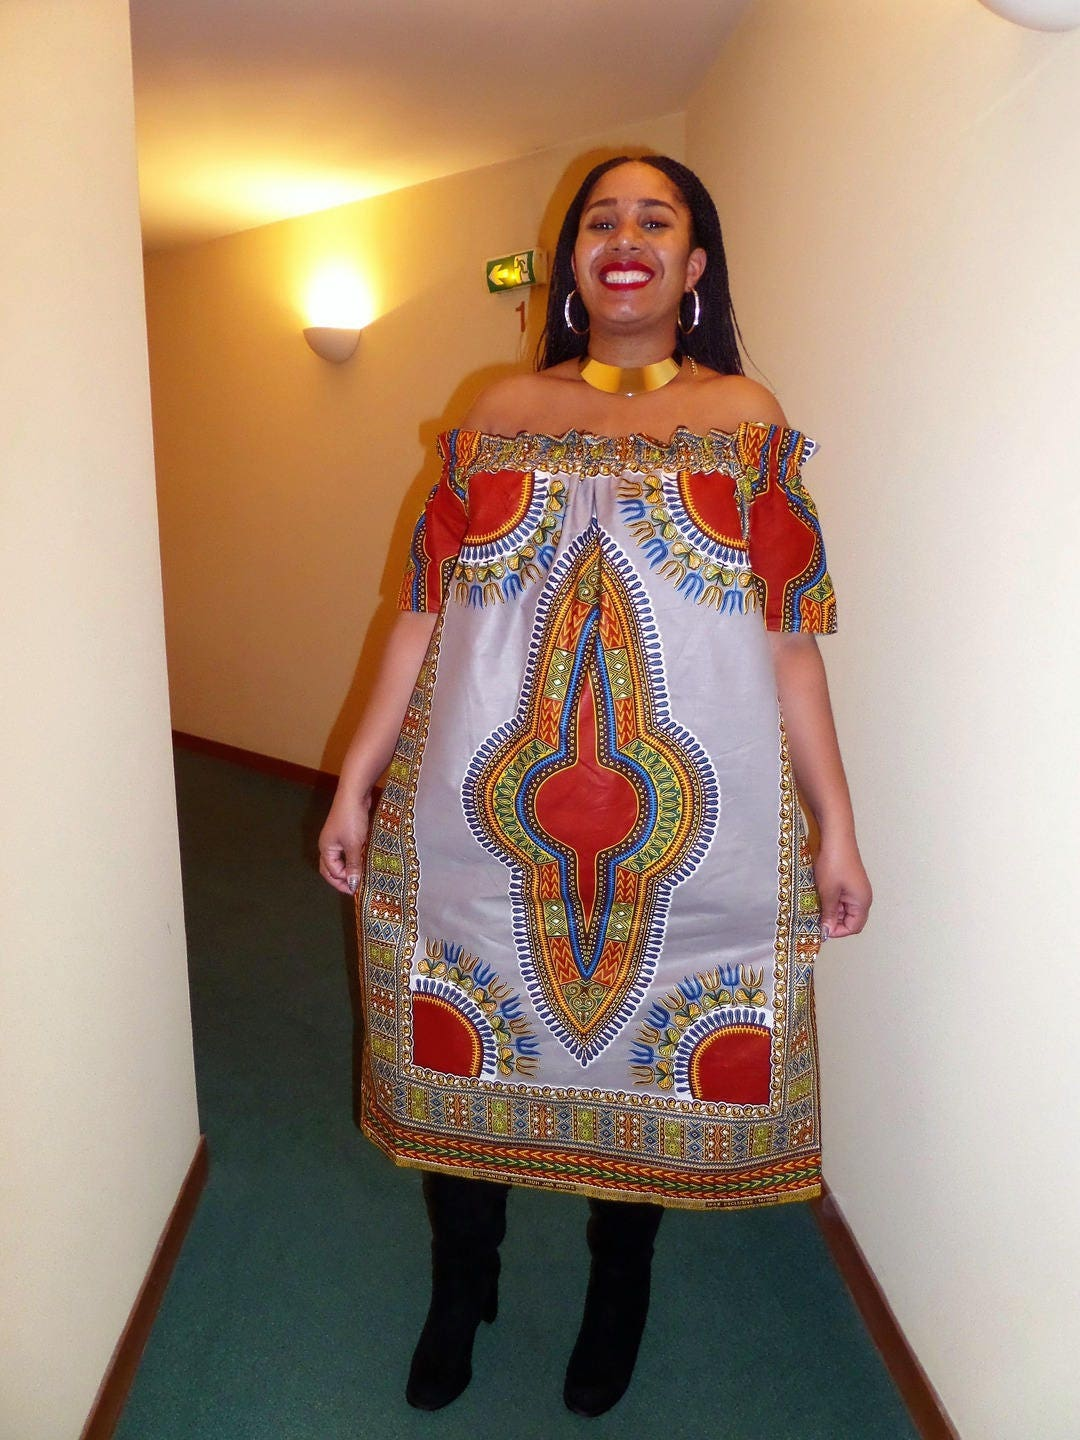 Robe ample femme robe africaine tissu wax robe pagne pagne ...